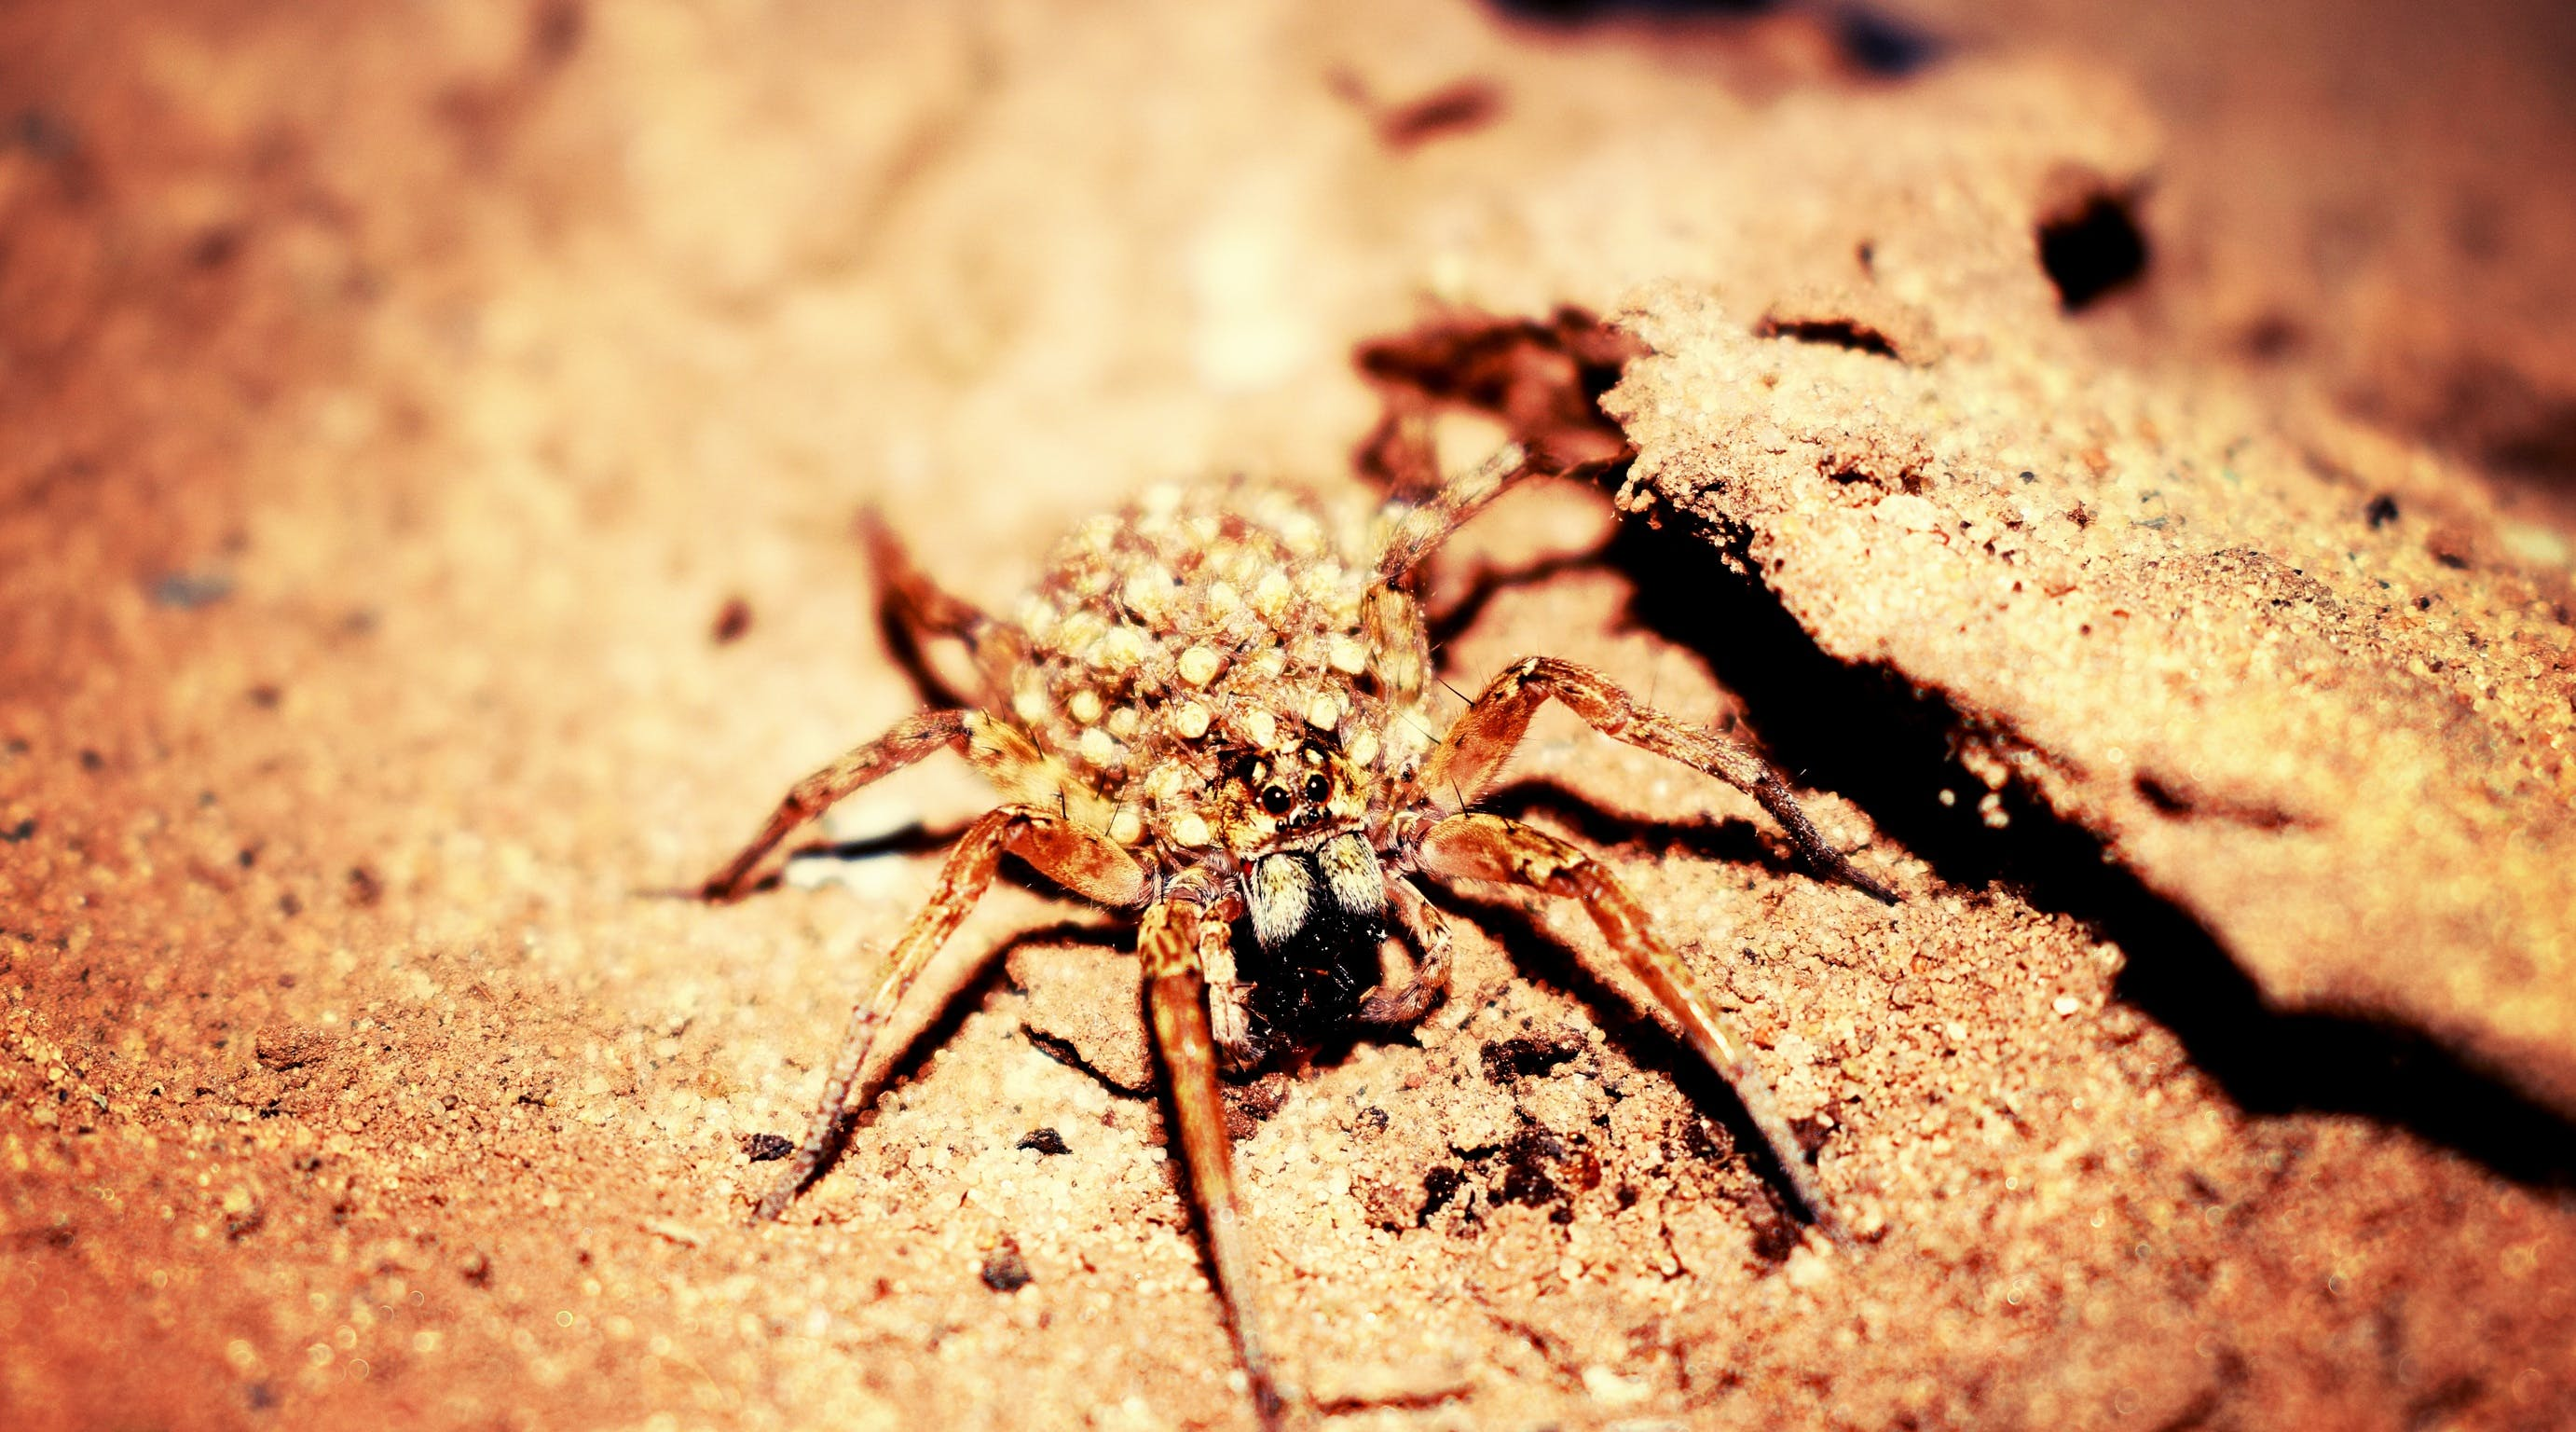 Female Wolf Spider in Closeup Photography